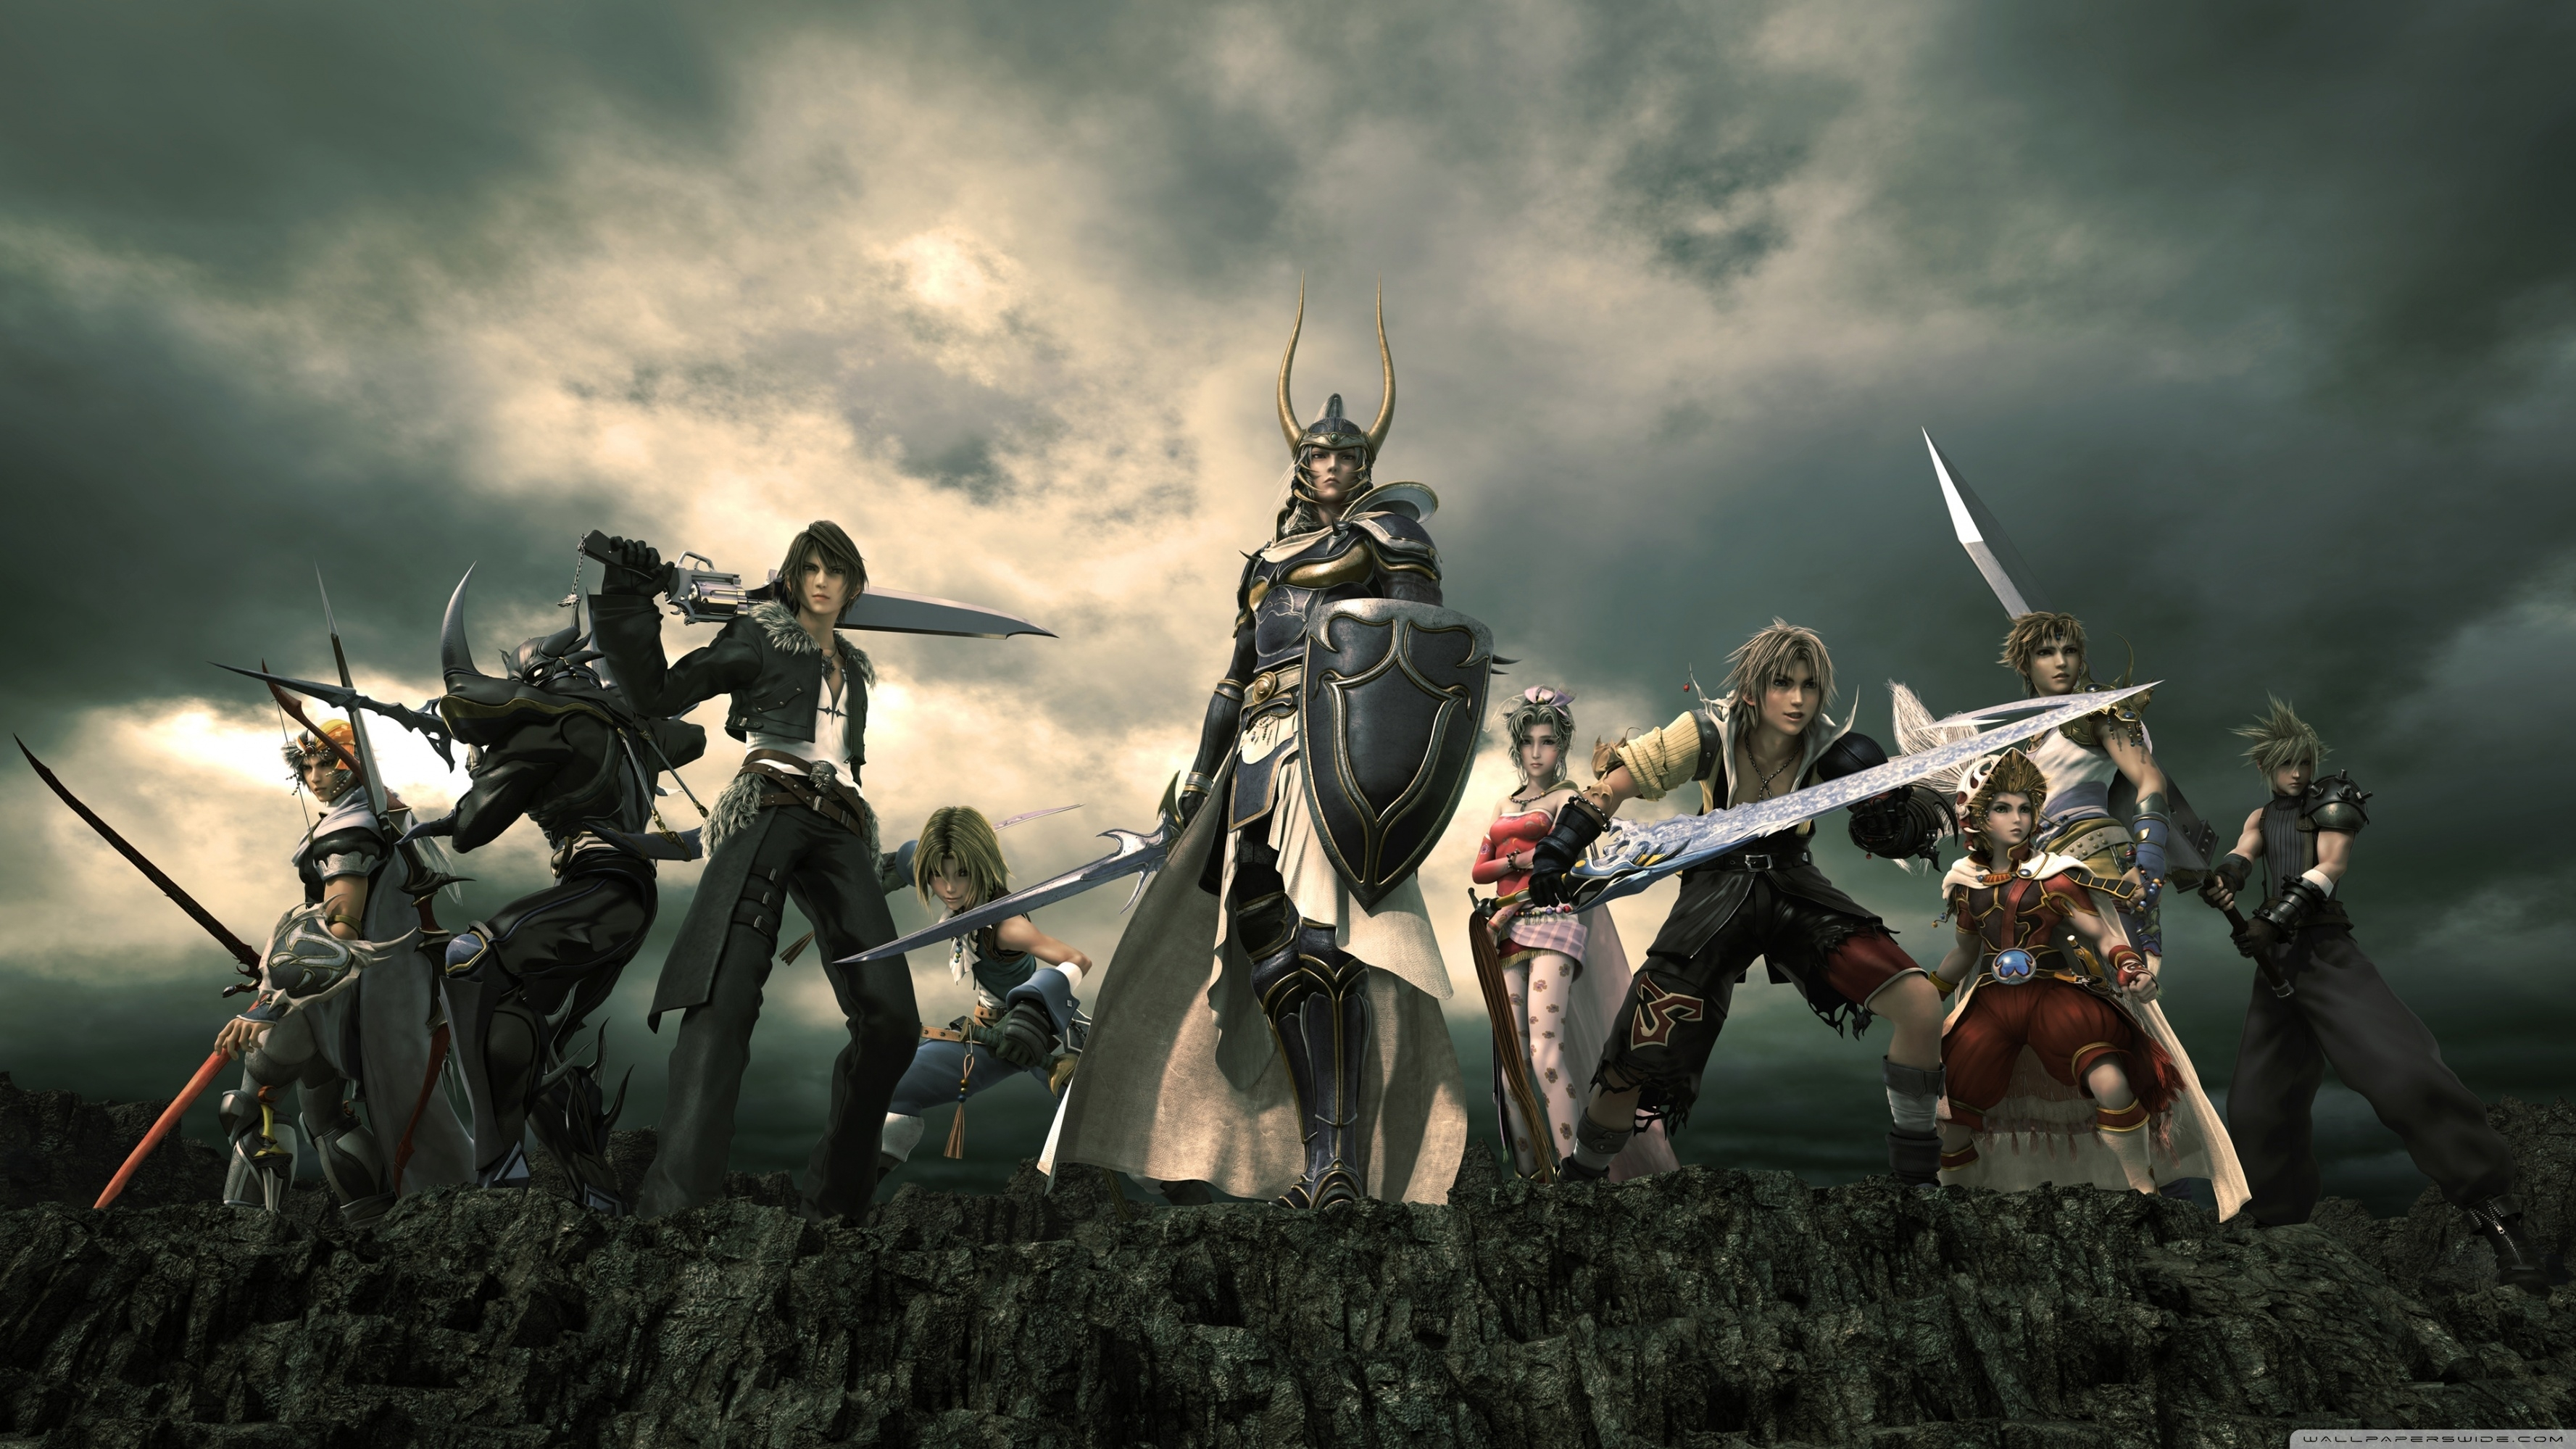 10 Top Final Fantasy Desktop Wallpaper FULL HD 1080p For PC Background